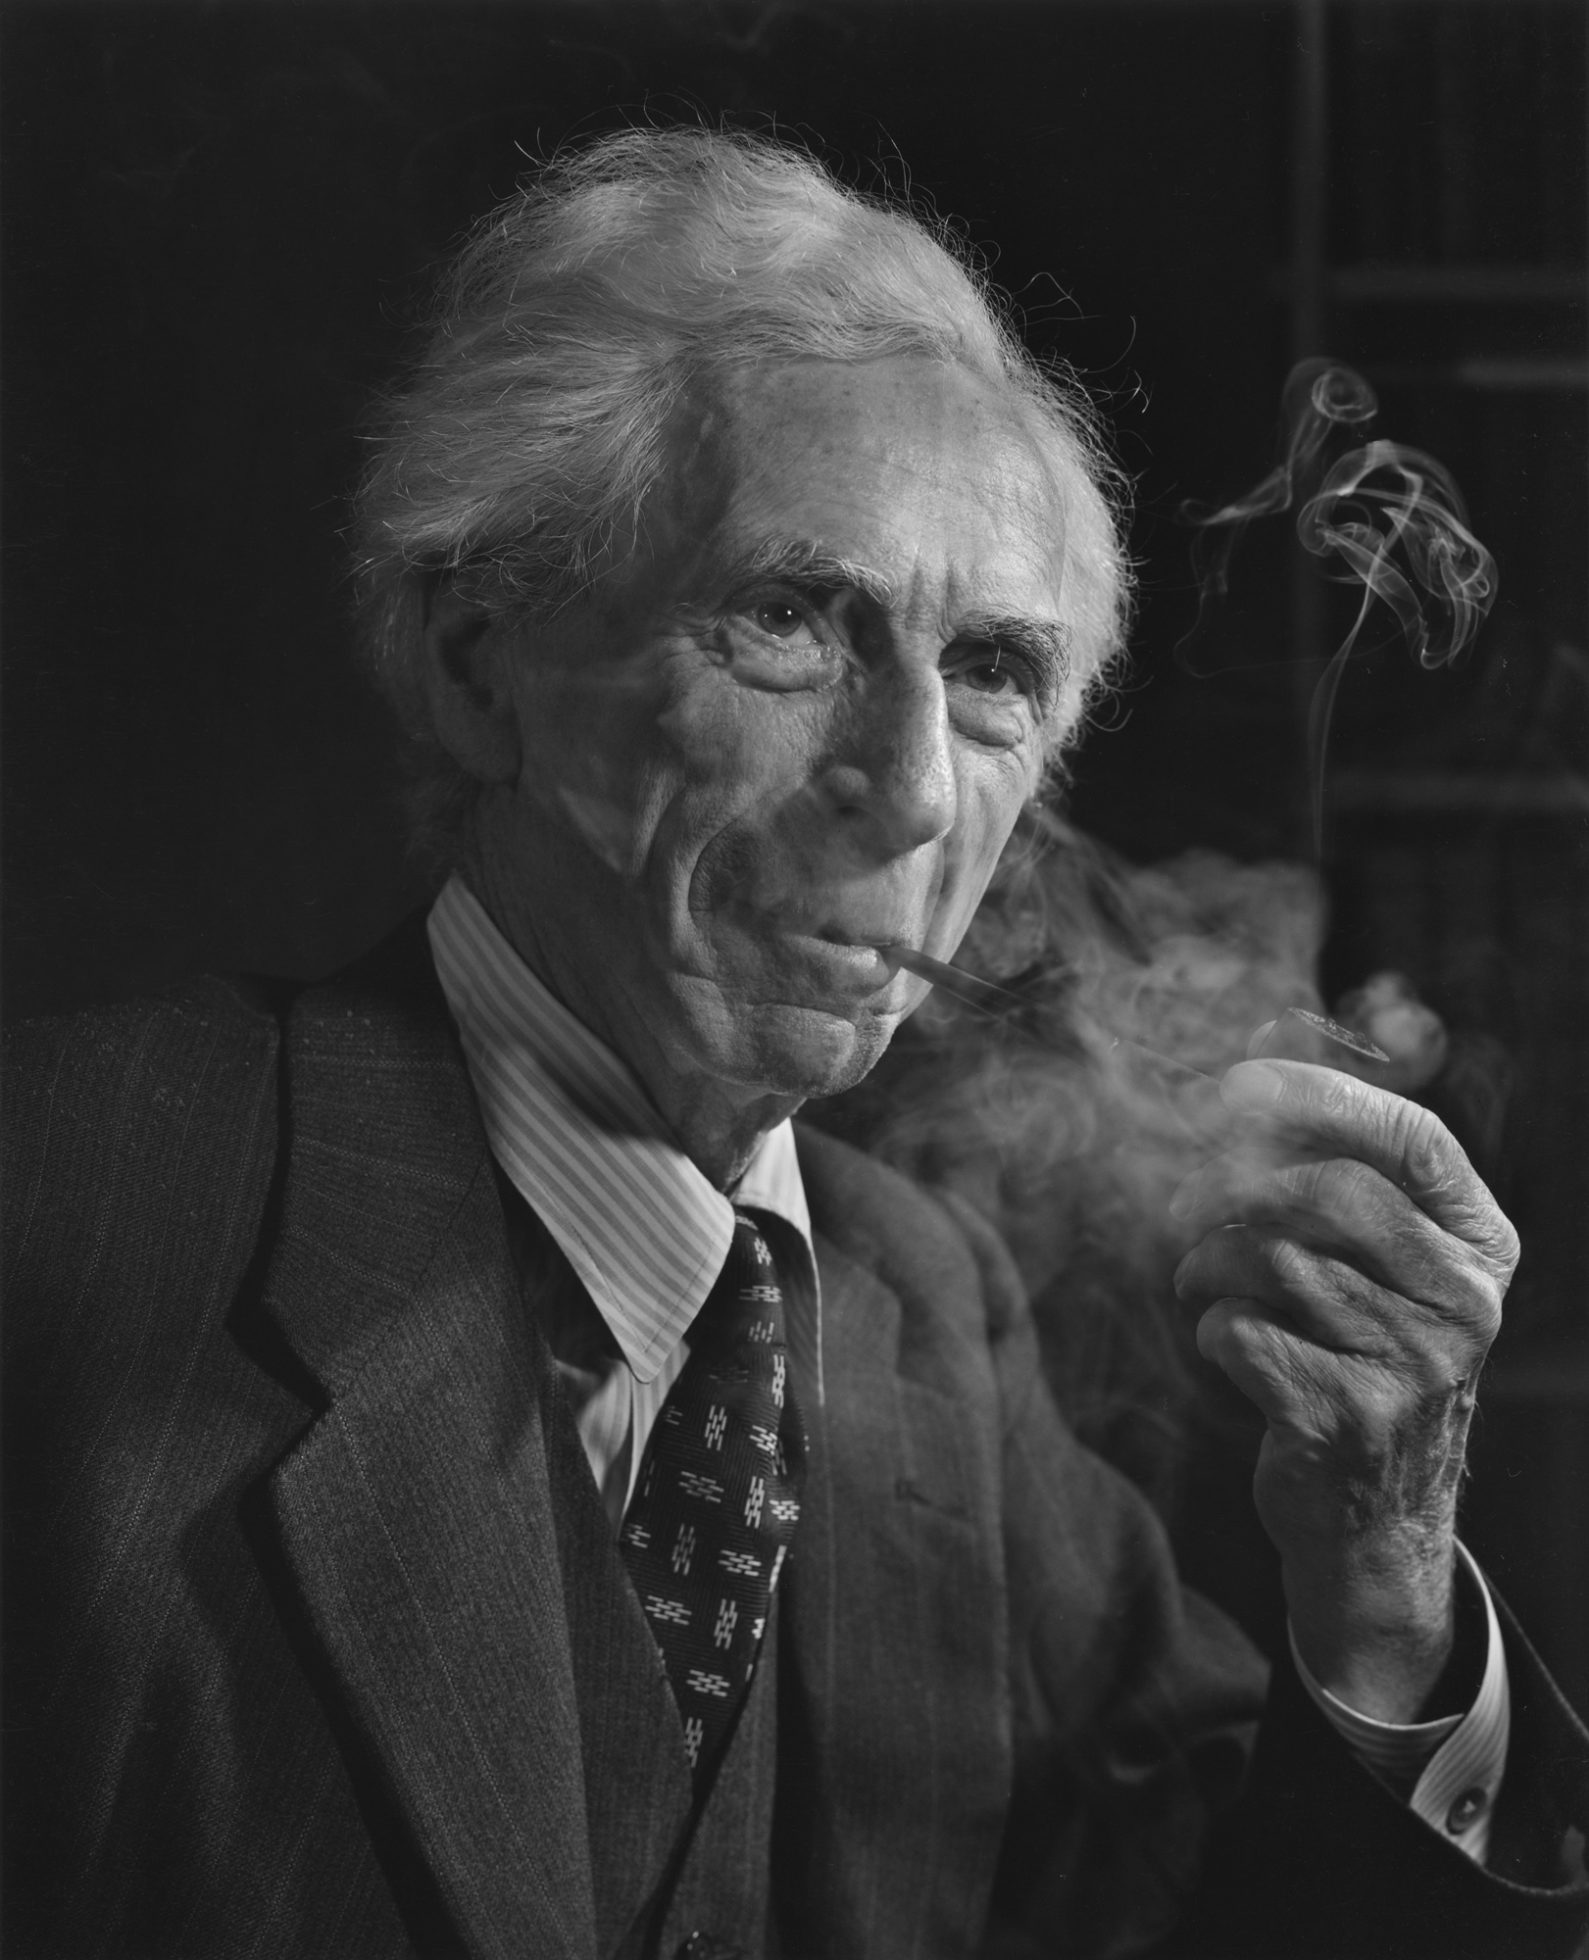 Betrand Russell as an old man, wearing a suit, smoking a pipe and looking cheerful.